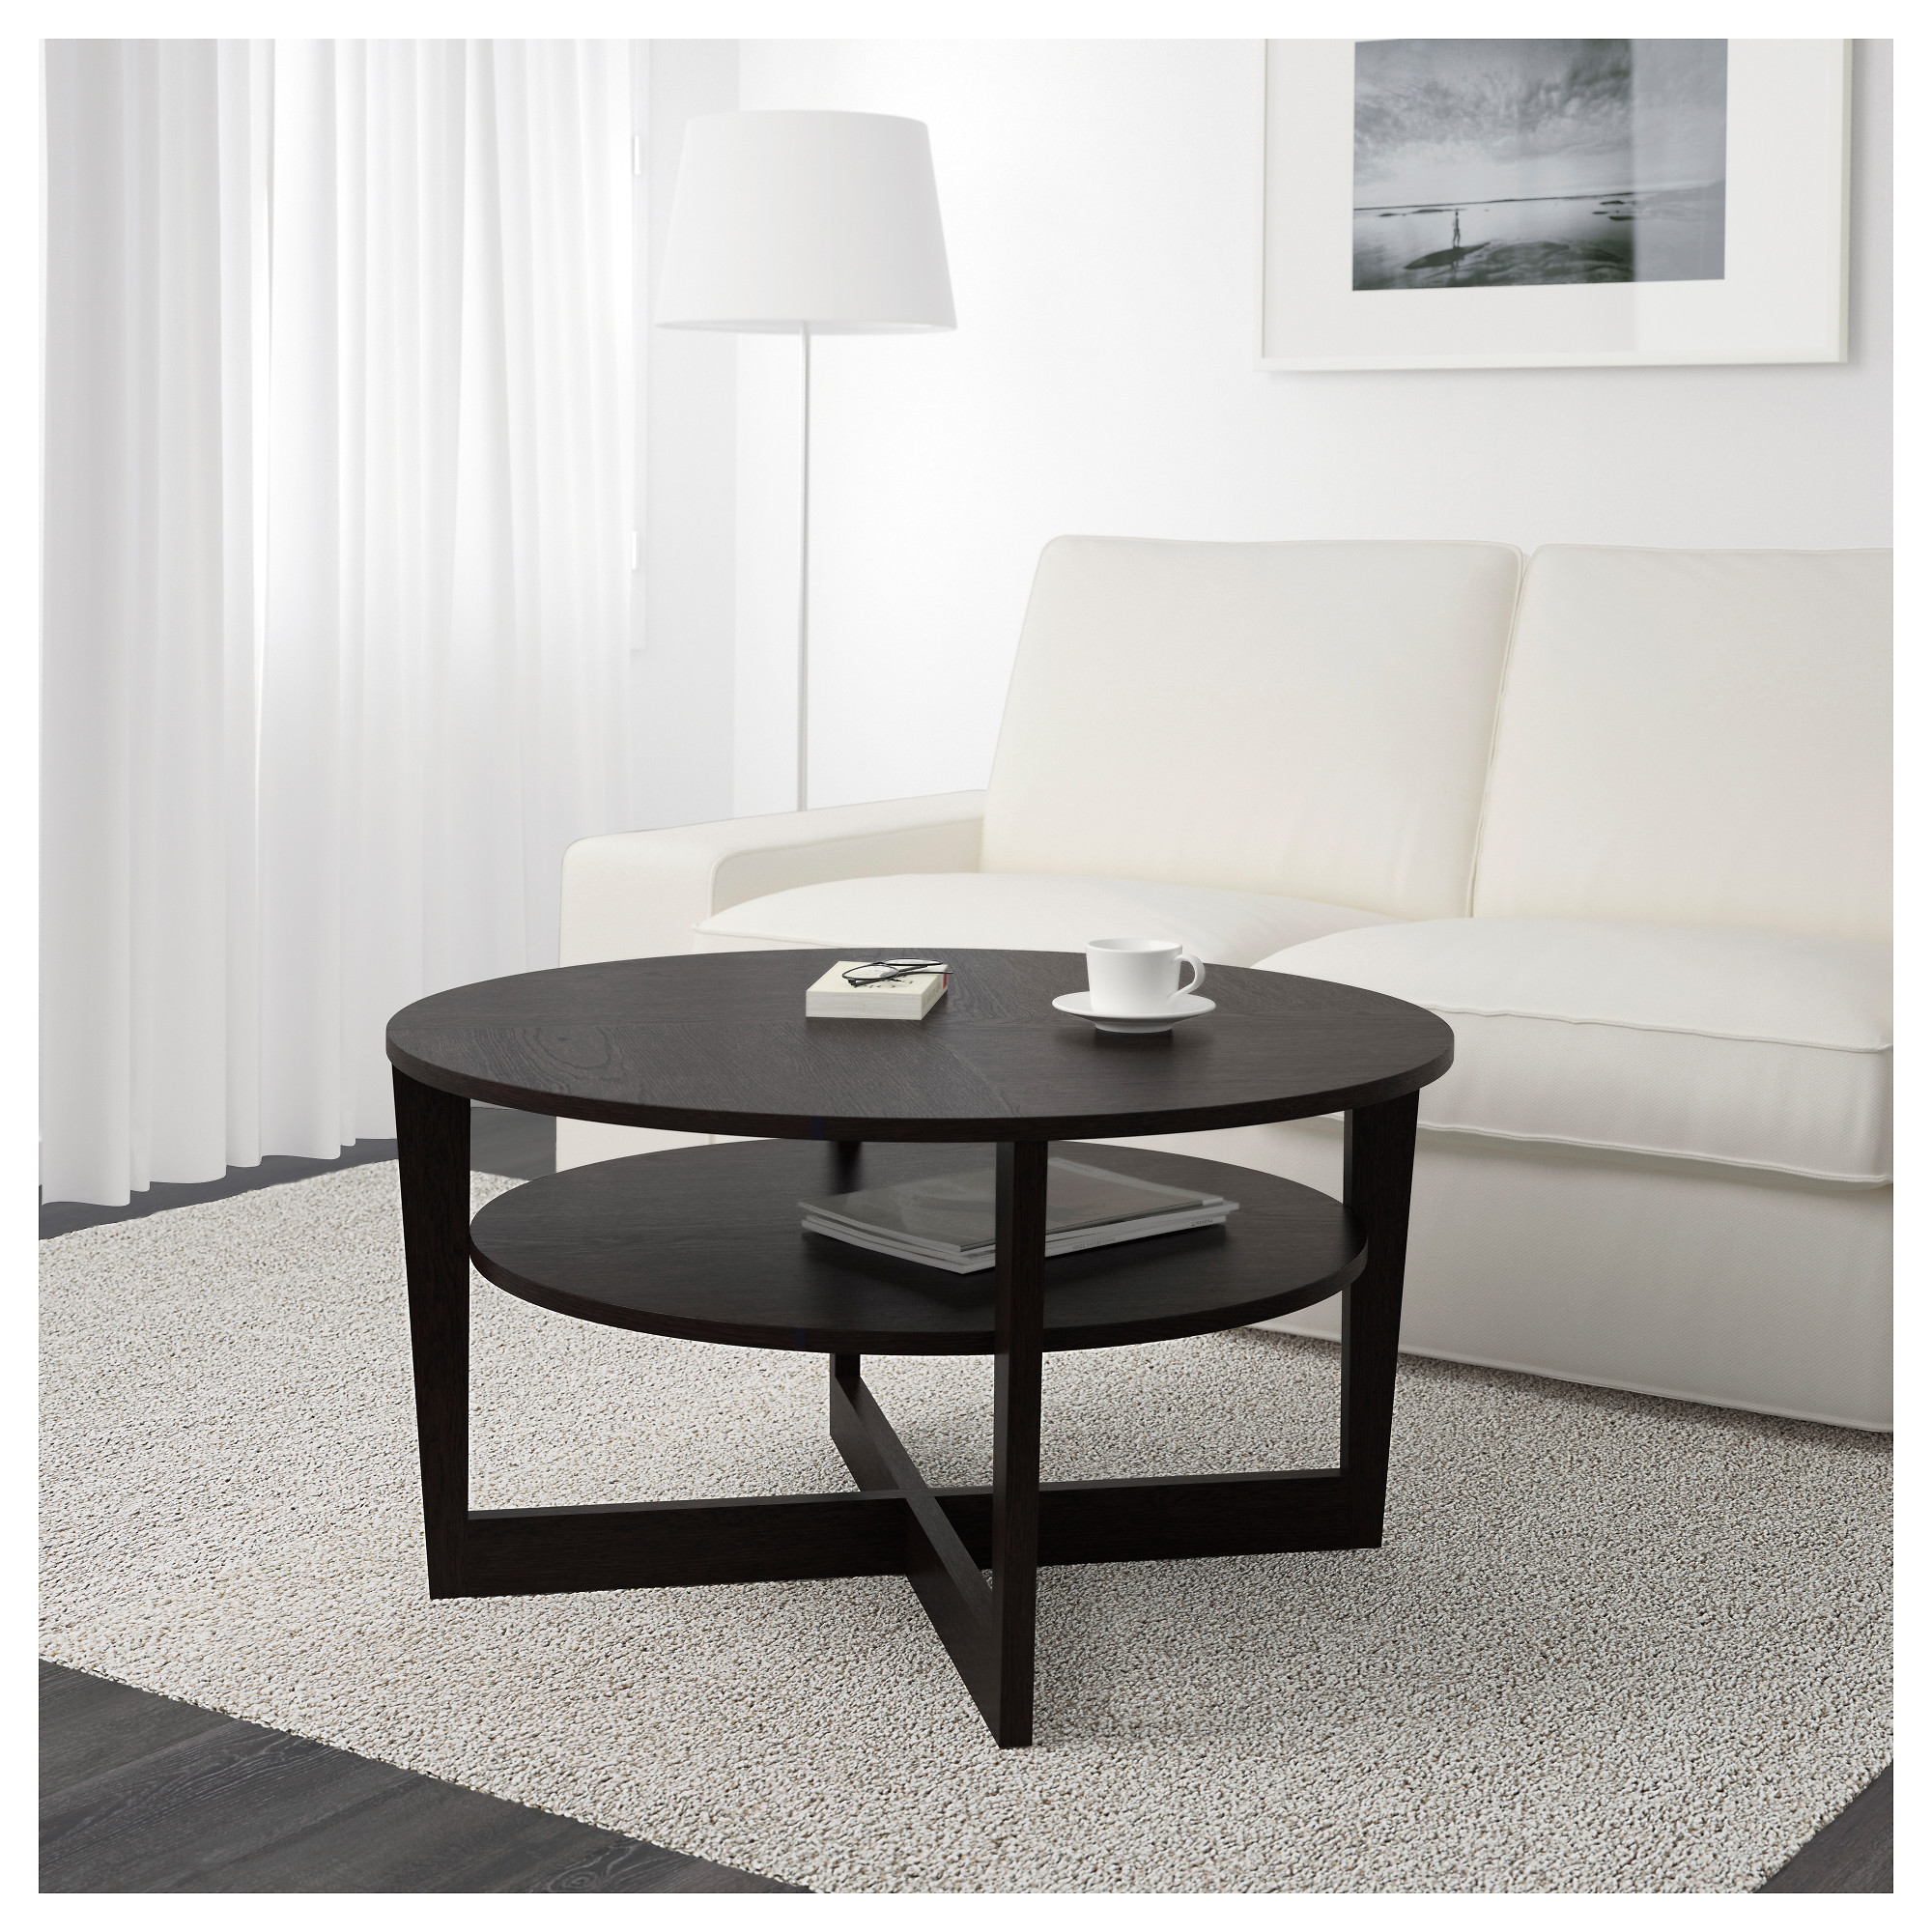 Tips to Choose Perfect Coffee Table - IKEA Qatar Blog